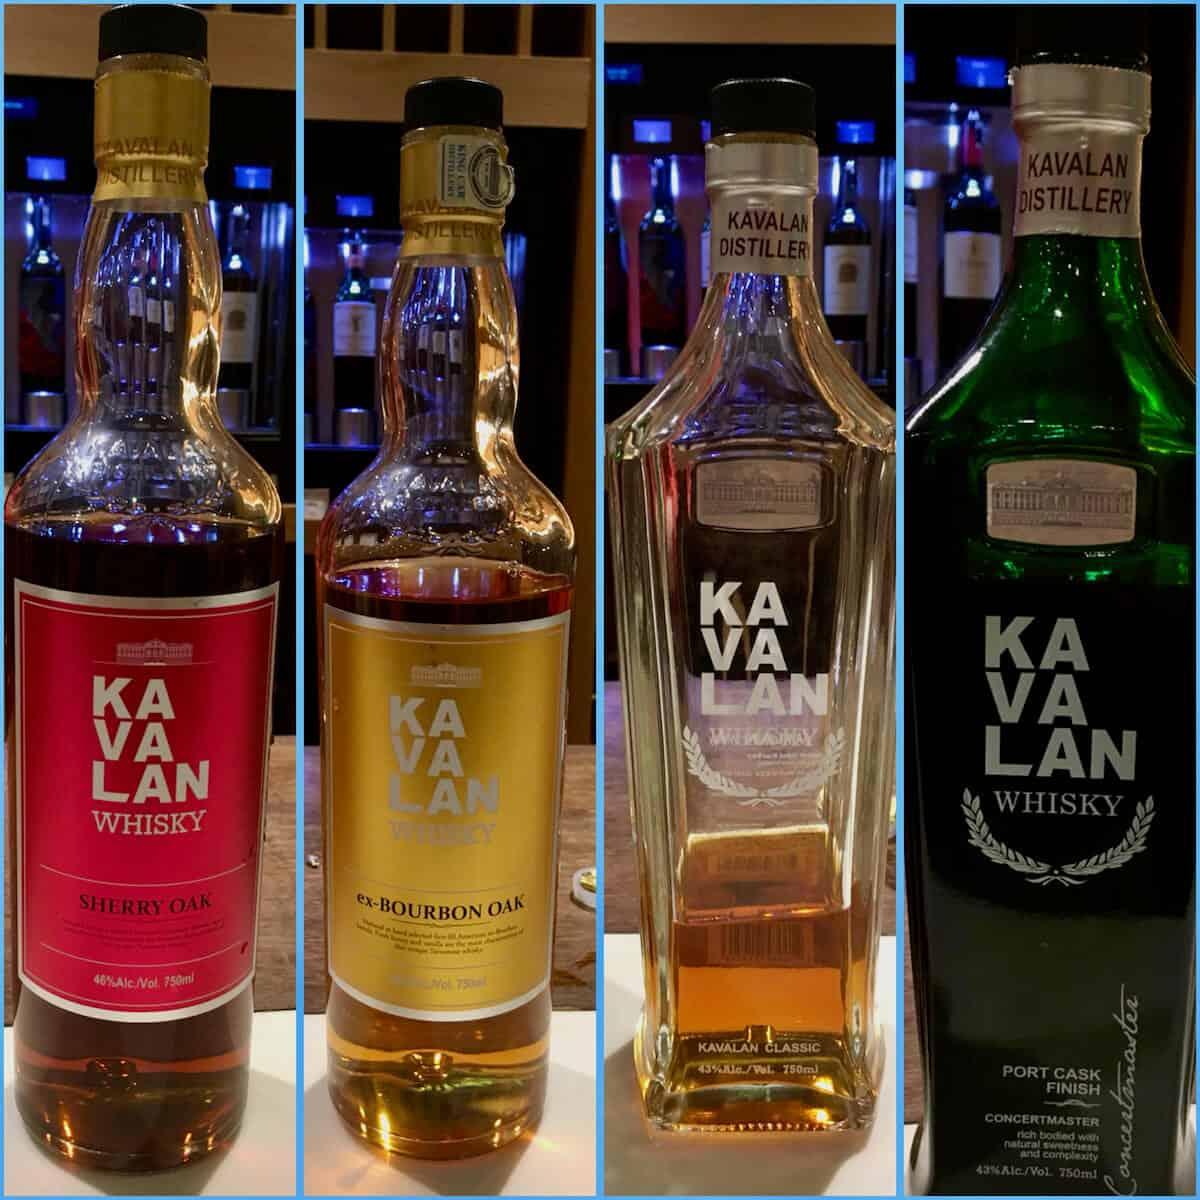 Collage of Kavalan lineup in bottles on a counter.